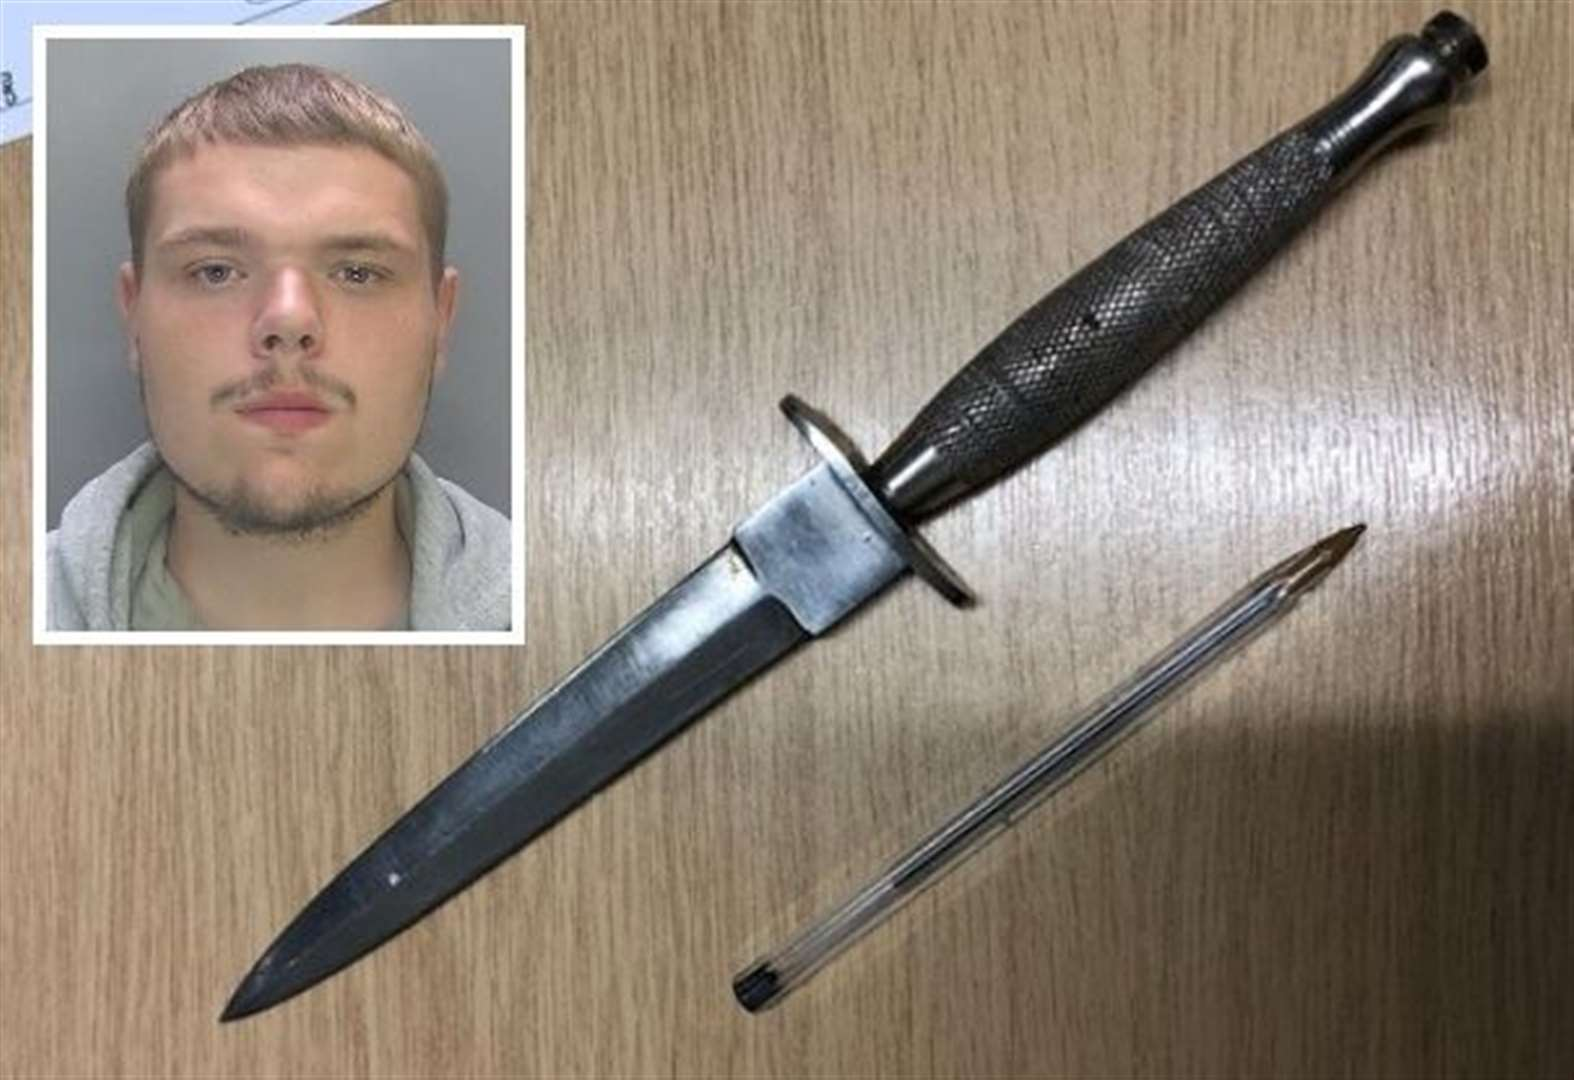 Cambridge man with dagger in trousers sentenced